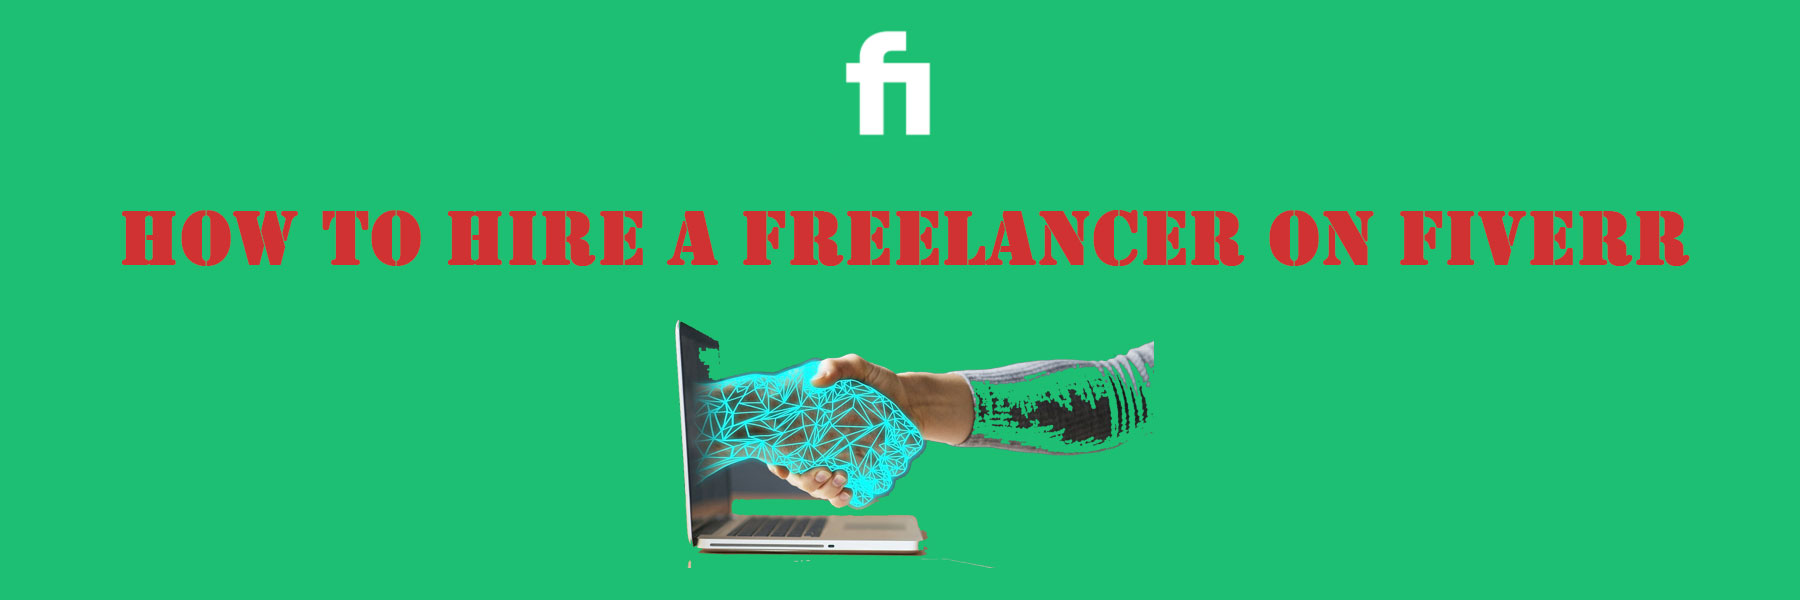 How to Hire a Freelancer on Fiverr